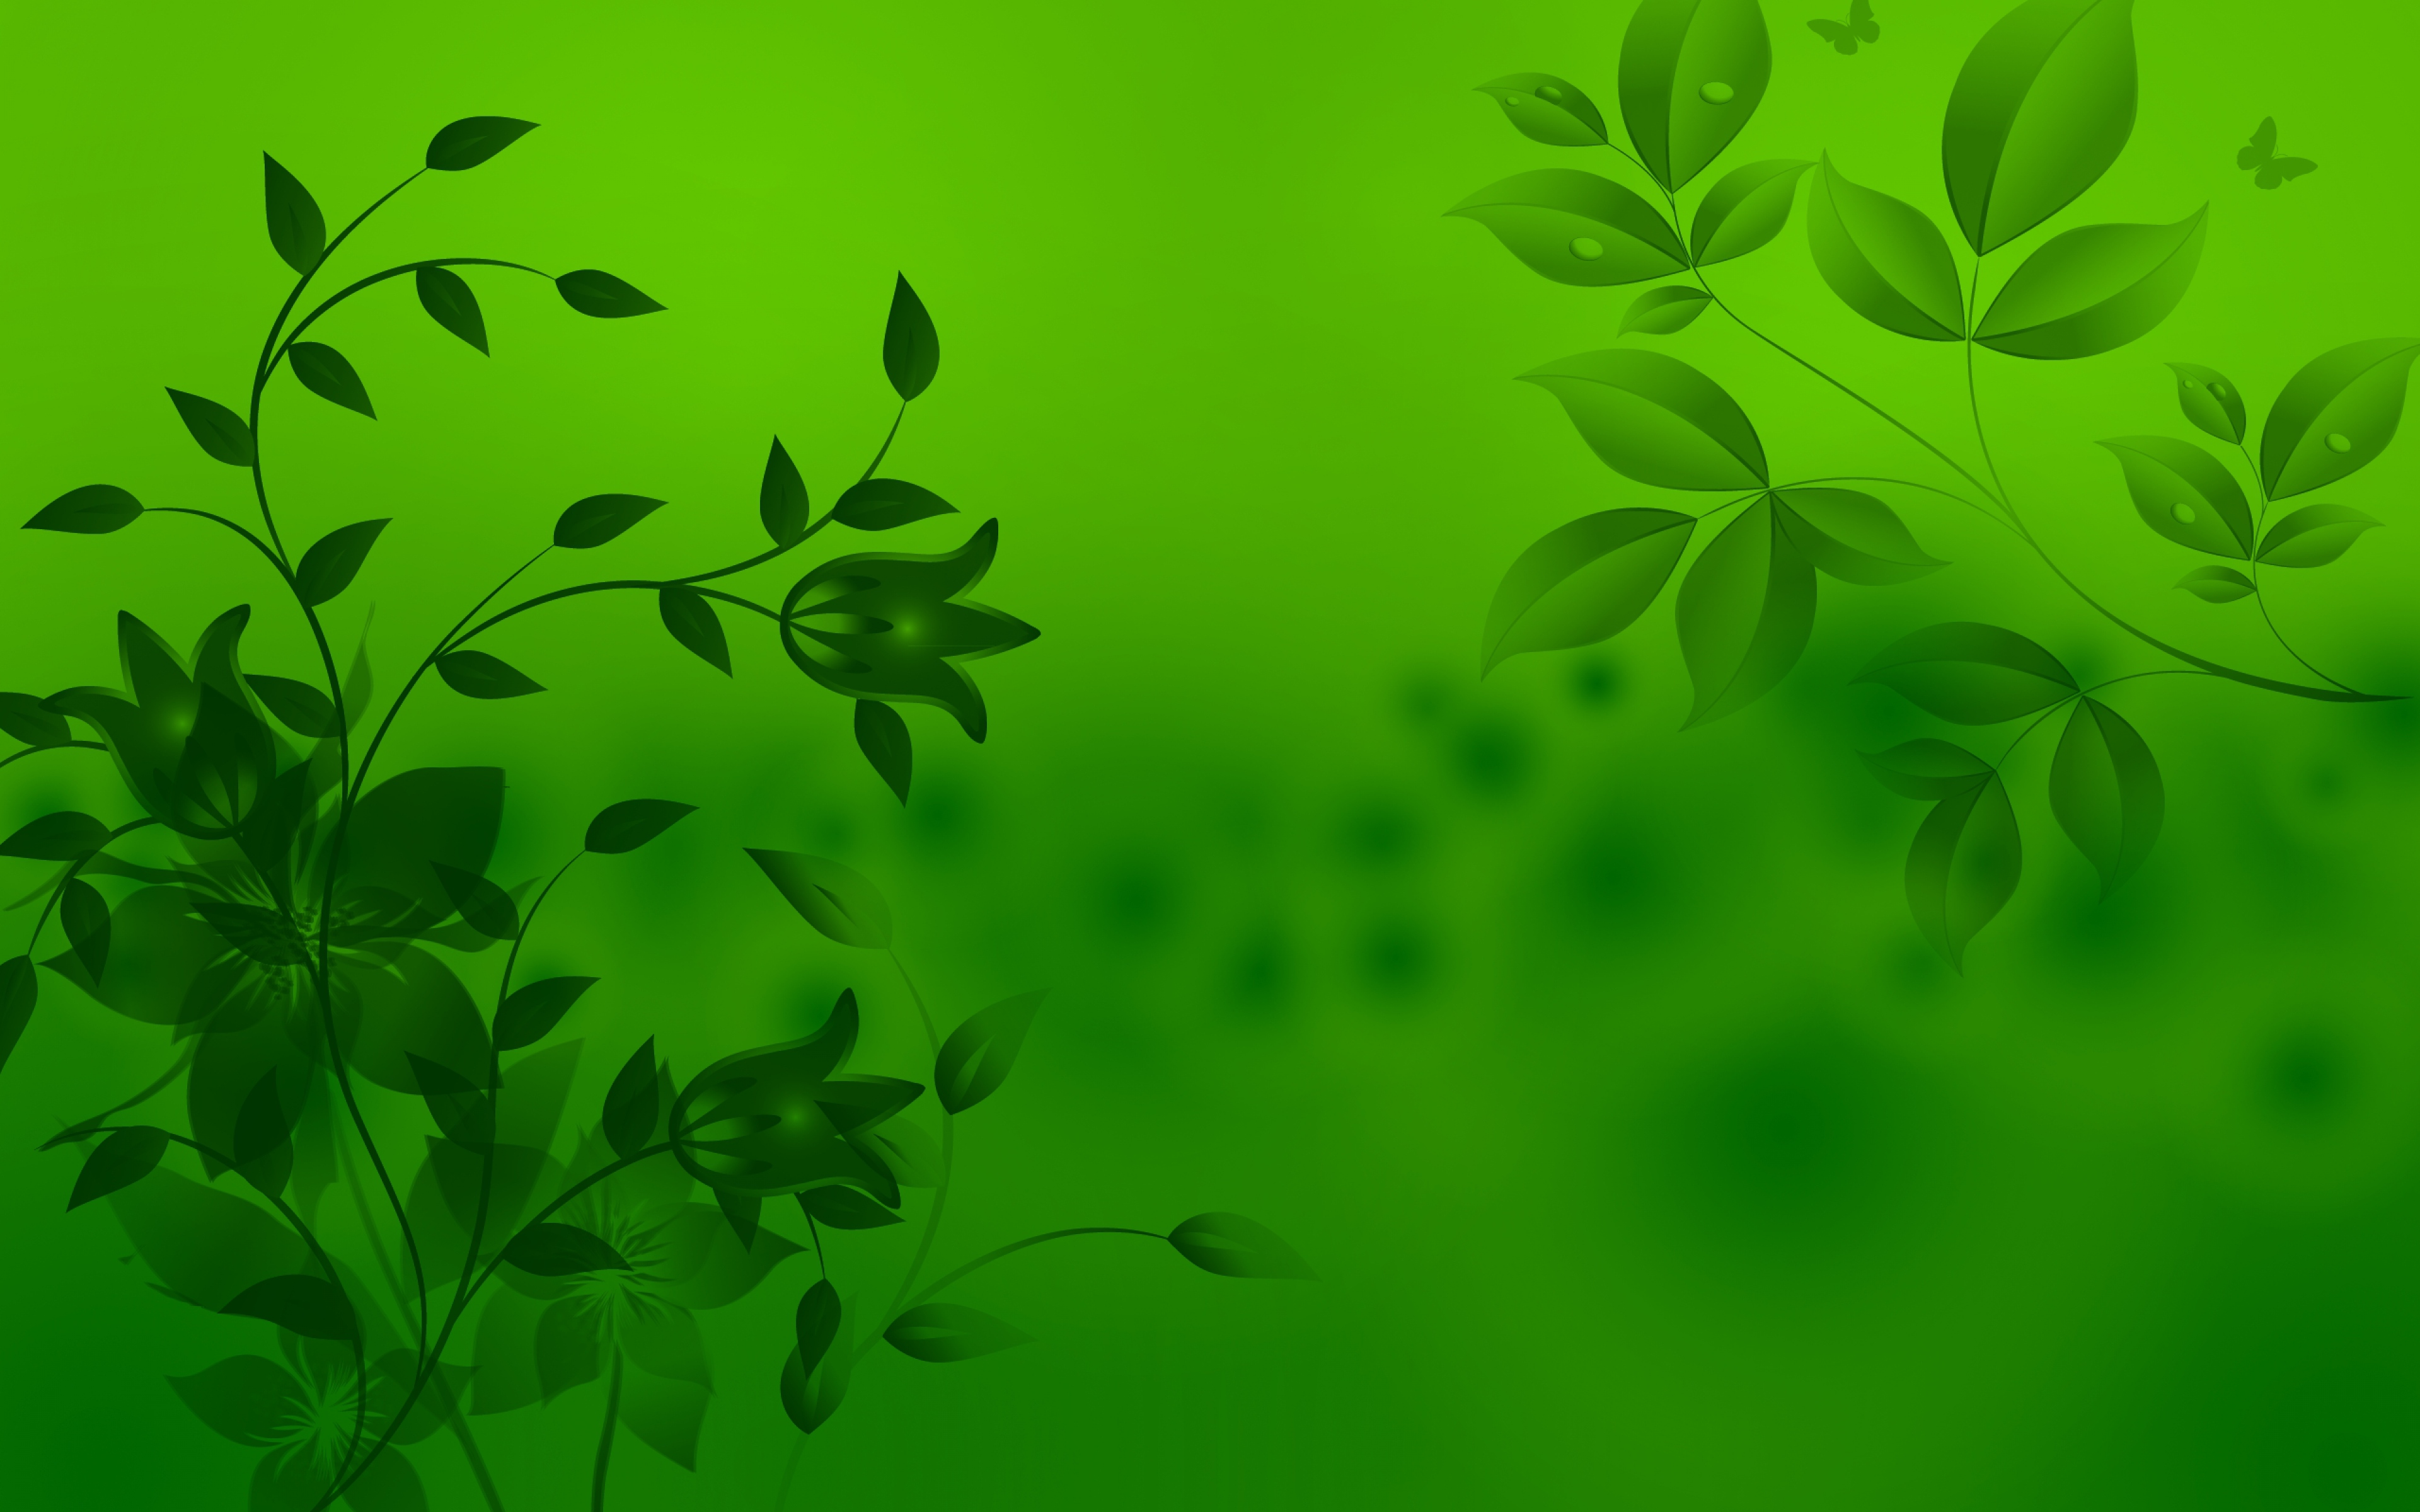 Wallpaper With Green